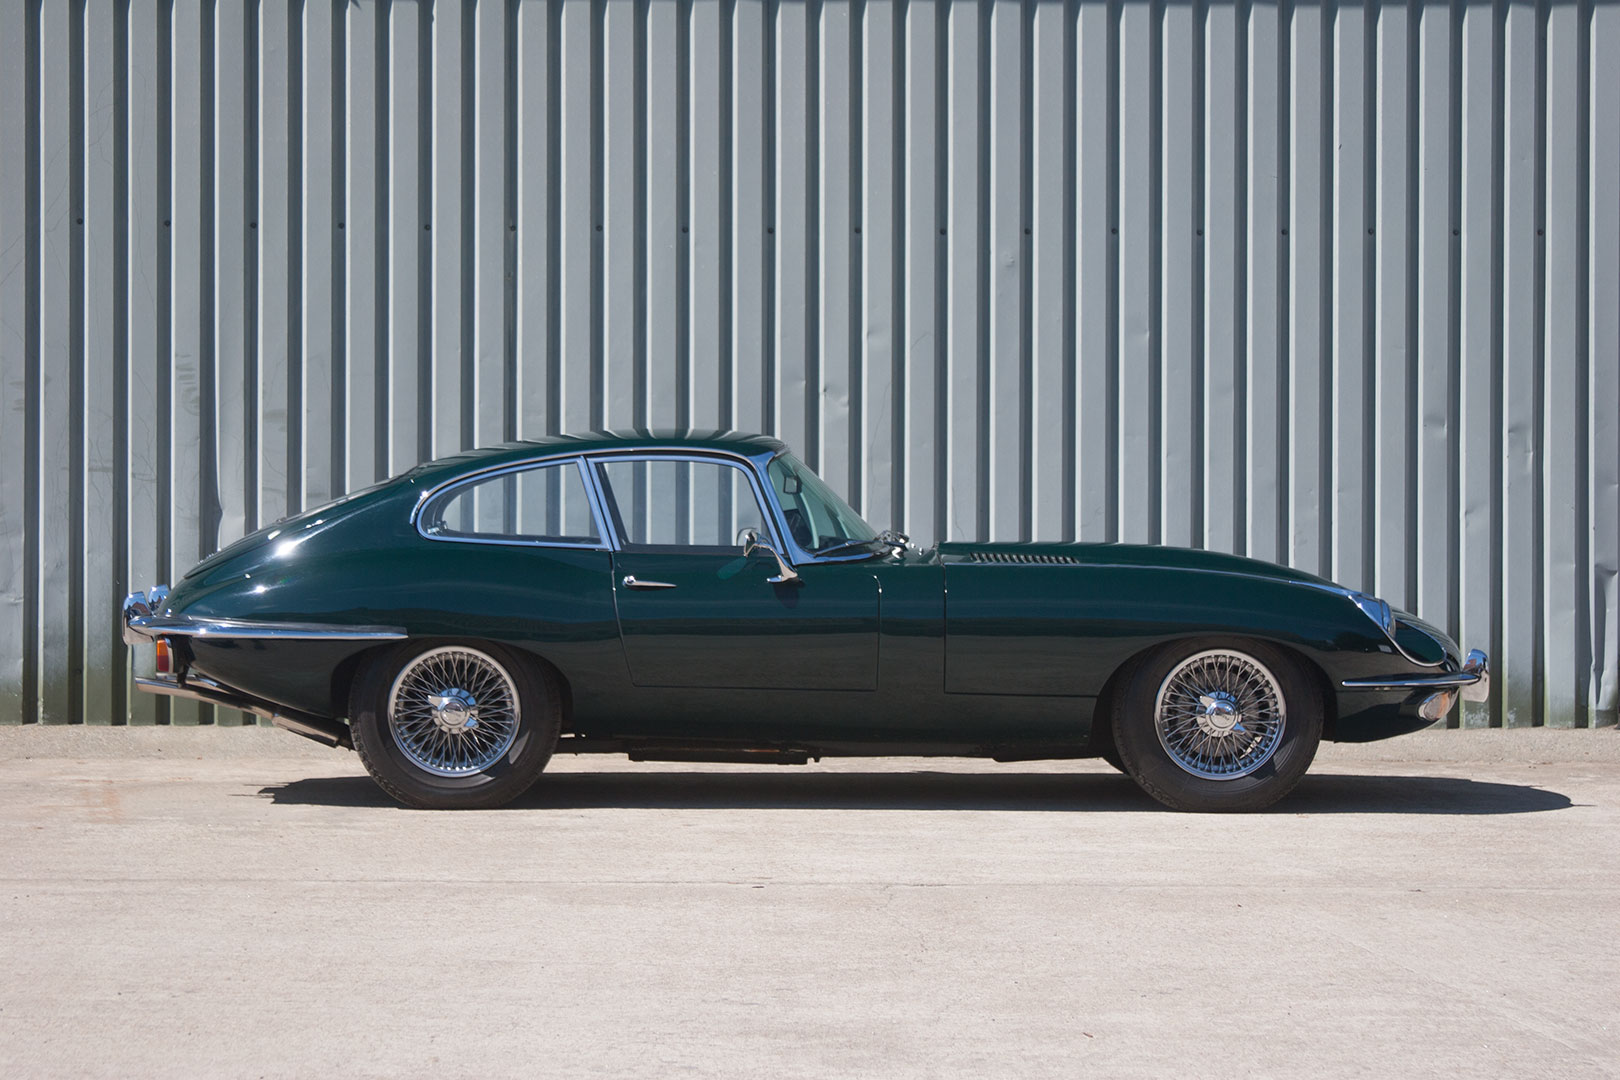 jaguar e type series 2 coupe 1969 70 4 2l jersey classic and vintage car sales. Black Bedroom Furniture Sets. Home Design Ideas